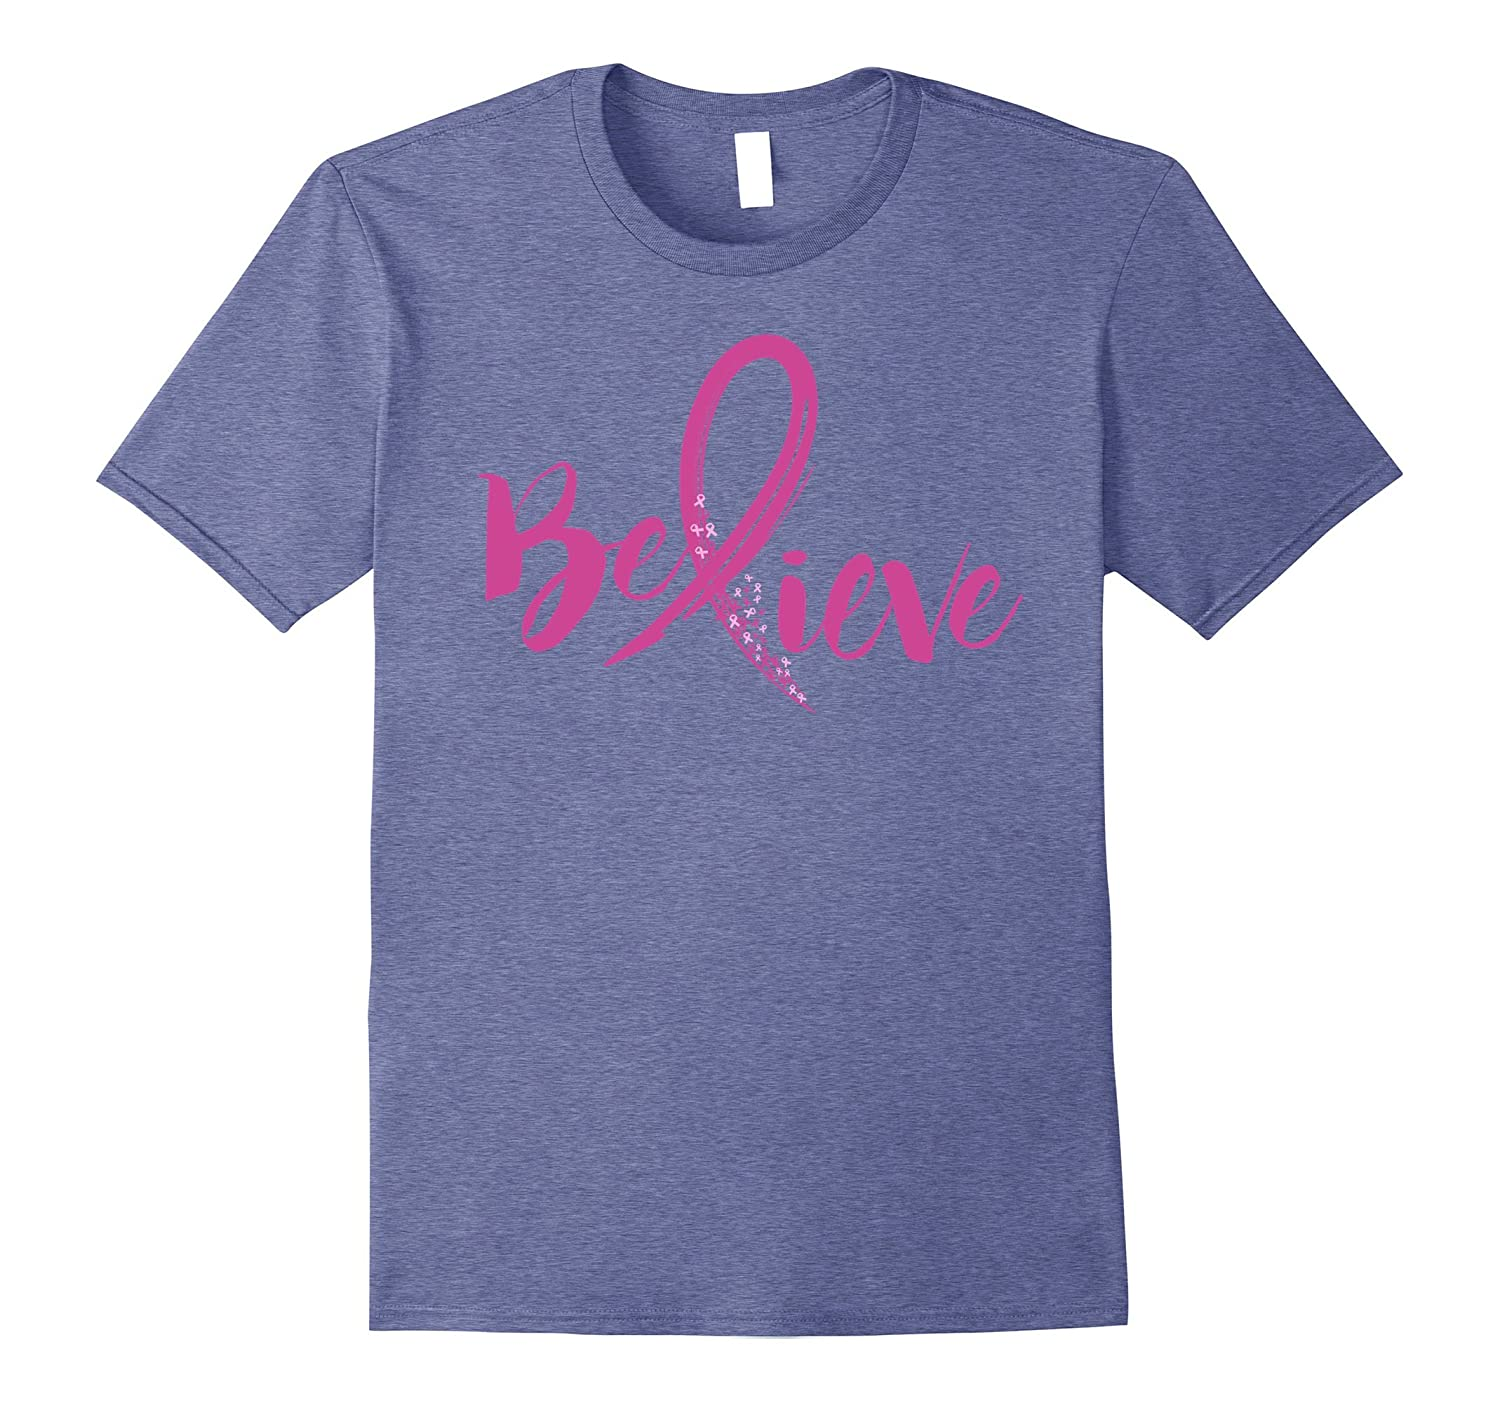 4f95d9e5e00 Believe - Women Breast Cancer Awareness Fight T-Shirt-FL ...